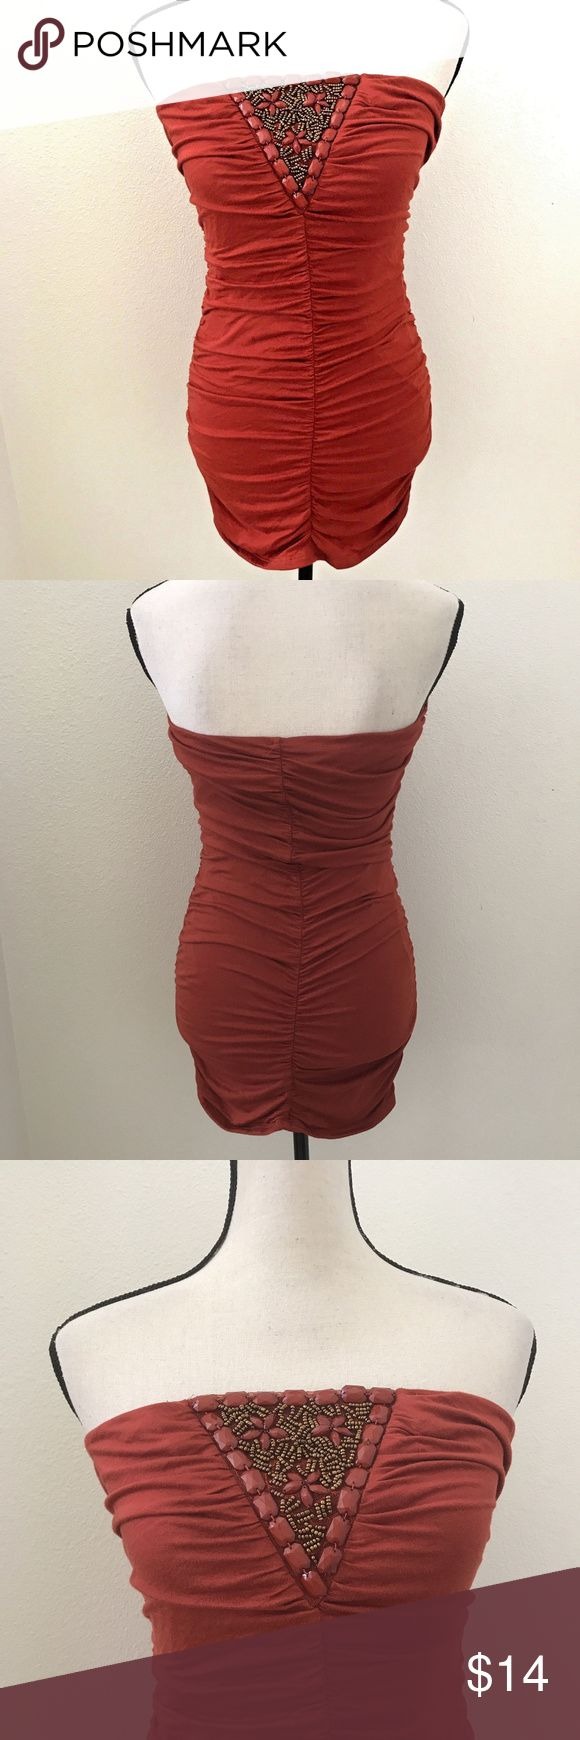 "Rustic Orange Tube Dress Strapless Bodycon size L rustic orange mini dress bodycon strapless beaded clubwear.  95% rayon 5% spandex.  COLOR: Rustic Orange  SIZE: L Juniors  CONDITION: Pre-owned in excellent condition with no signs of wear, holes, rips.  MEASUREMENTS: (Laying Flat) Length- 25""  Armpit/Chest(across) - 14.5"" Waist(across)- 12 1/4""  HYO A5 Vanilla Bay Dresses Mini"